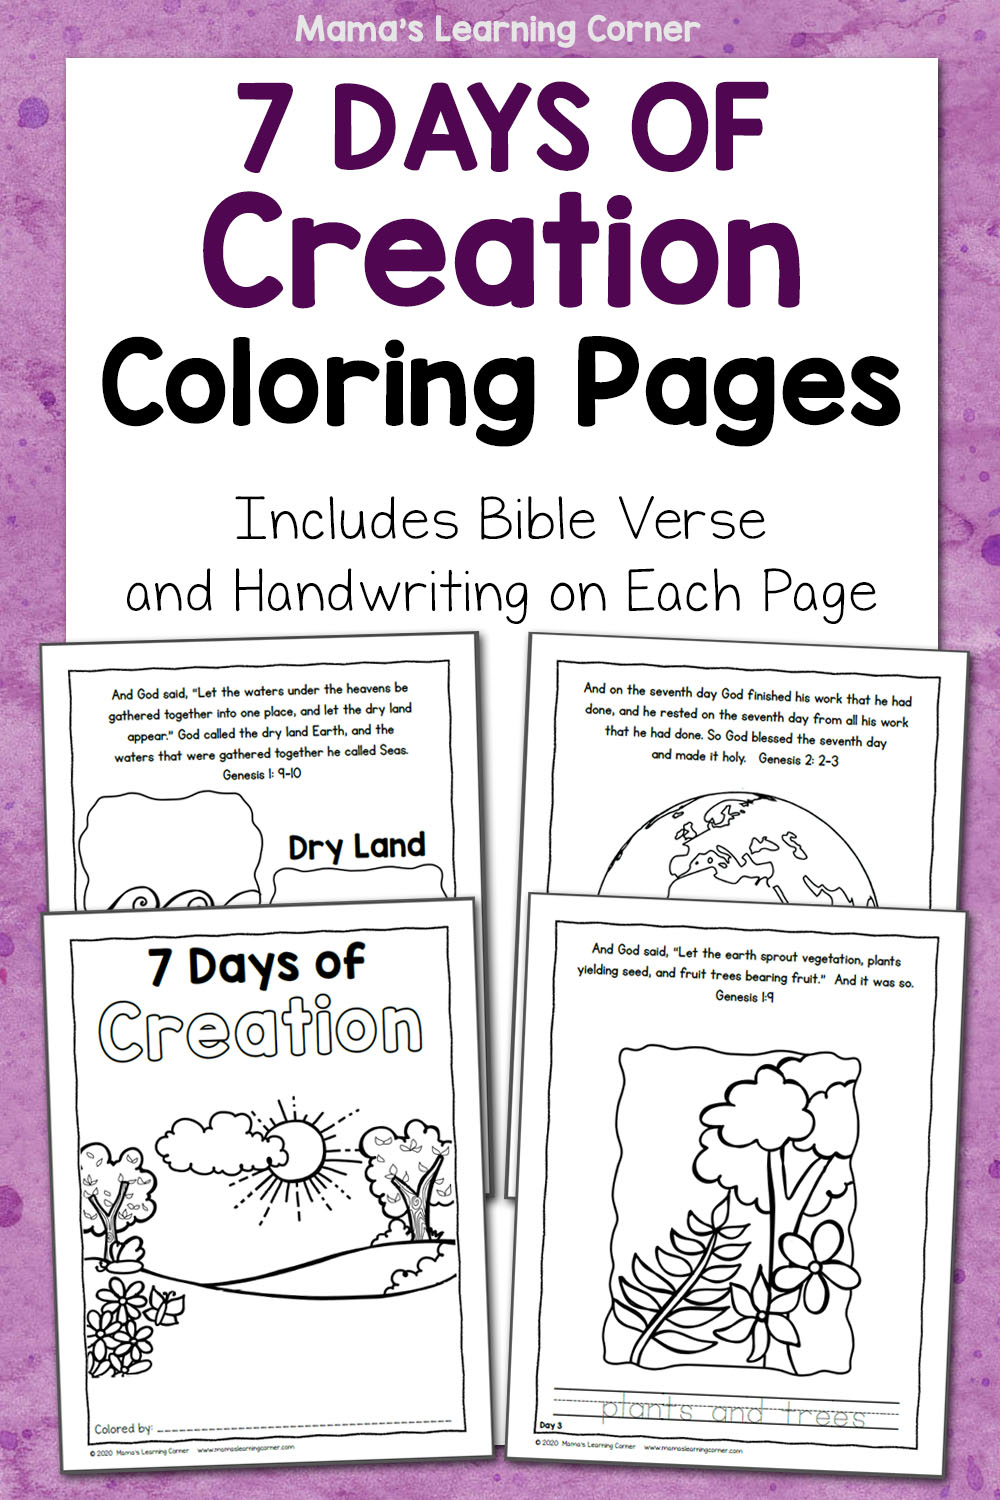 Top 10 Free Printable Bible Verse Coloring Pages Online | 1500x1000